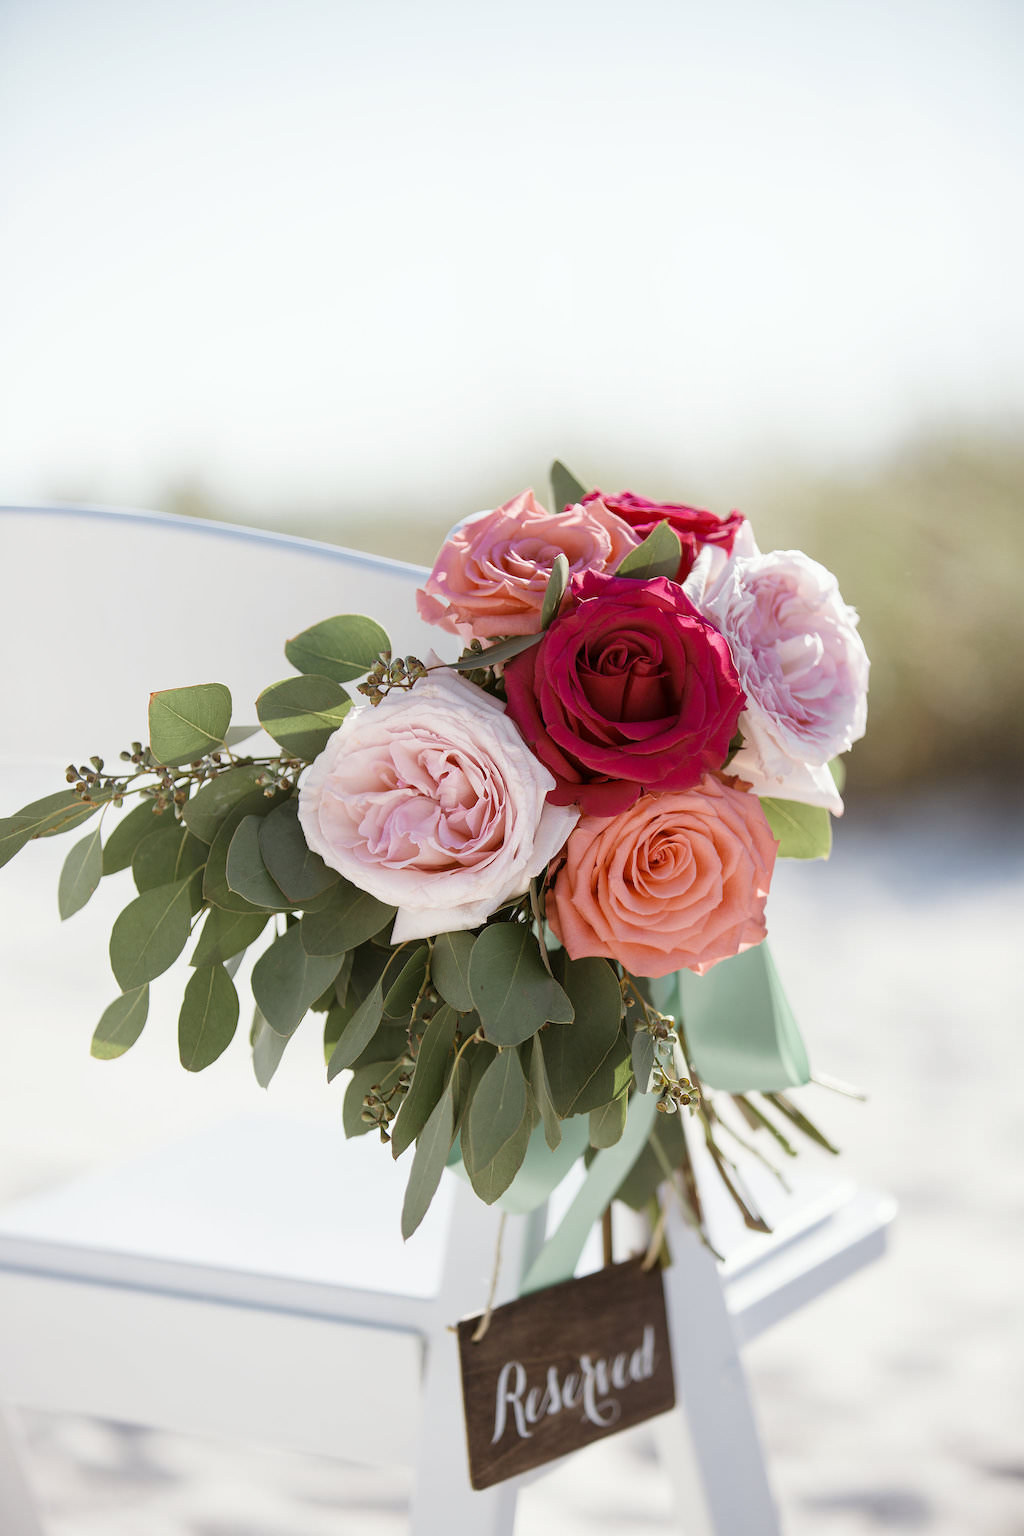 Tropical Beach Wedding Ceremony Decor, White Folding Chair with Blush Pink, Coral and Red Roses with Greenery Florals